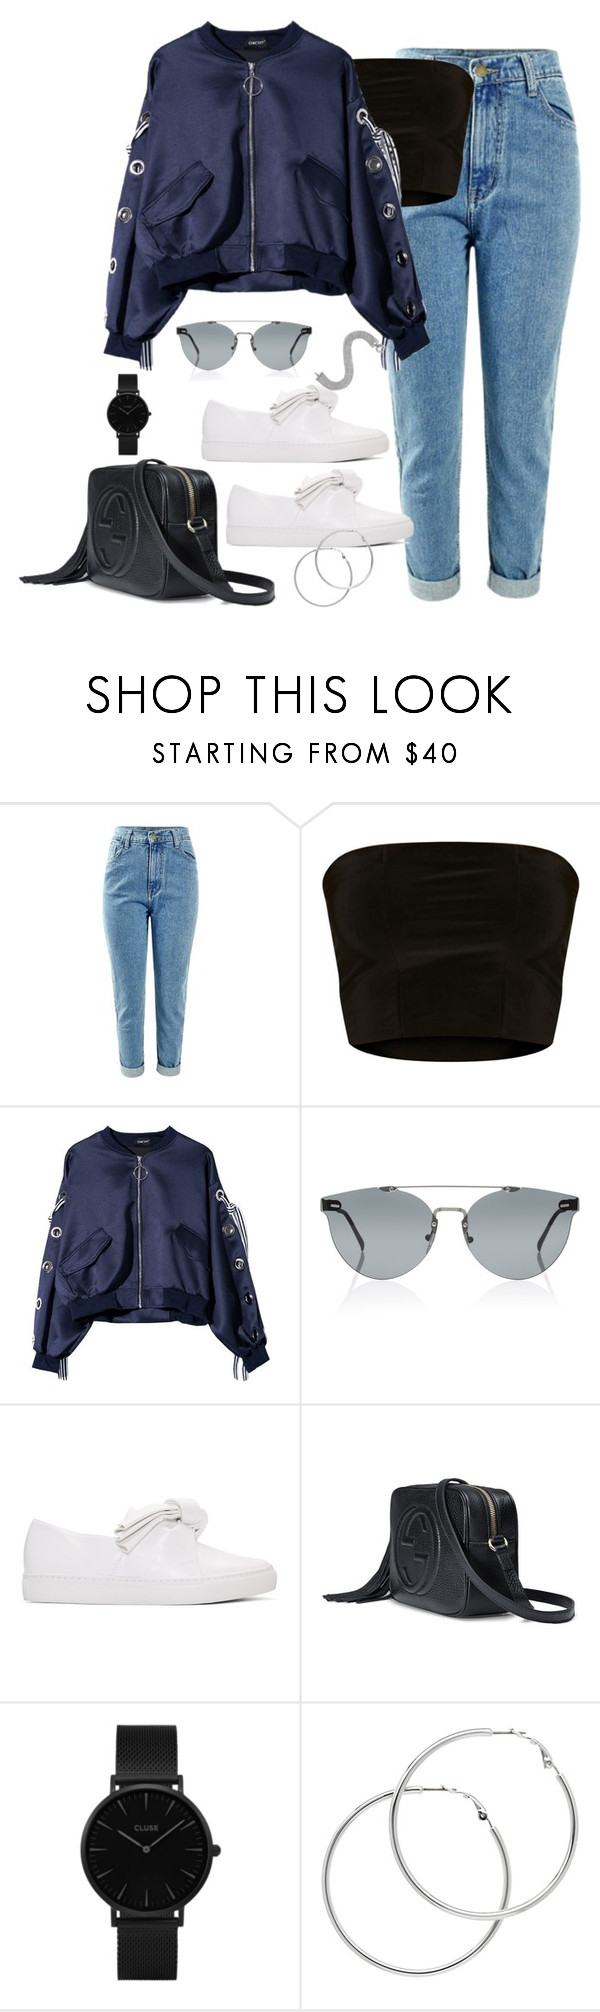 """""""Untitled #3924"""" by theaverageauburn ❤ liked on Polyvore featuring RetroSuperFuture, Cédric Charlier, Gucci, CLUSE and Melissa Odabash"""